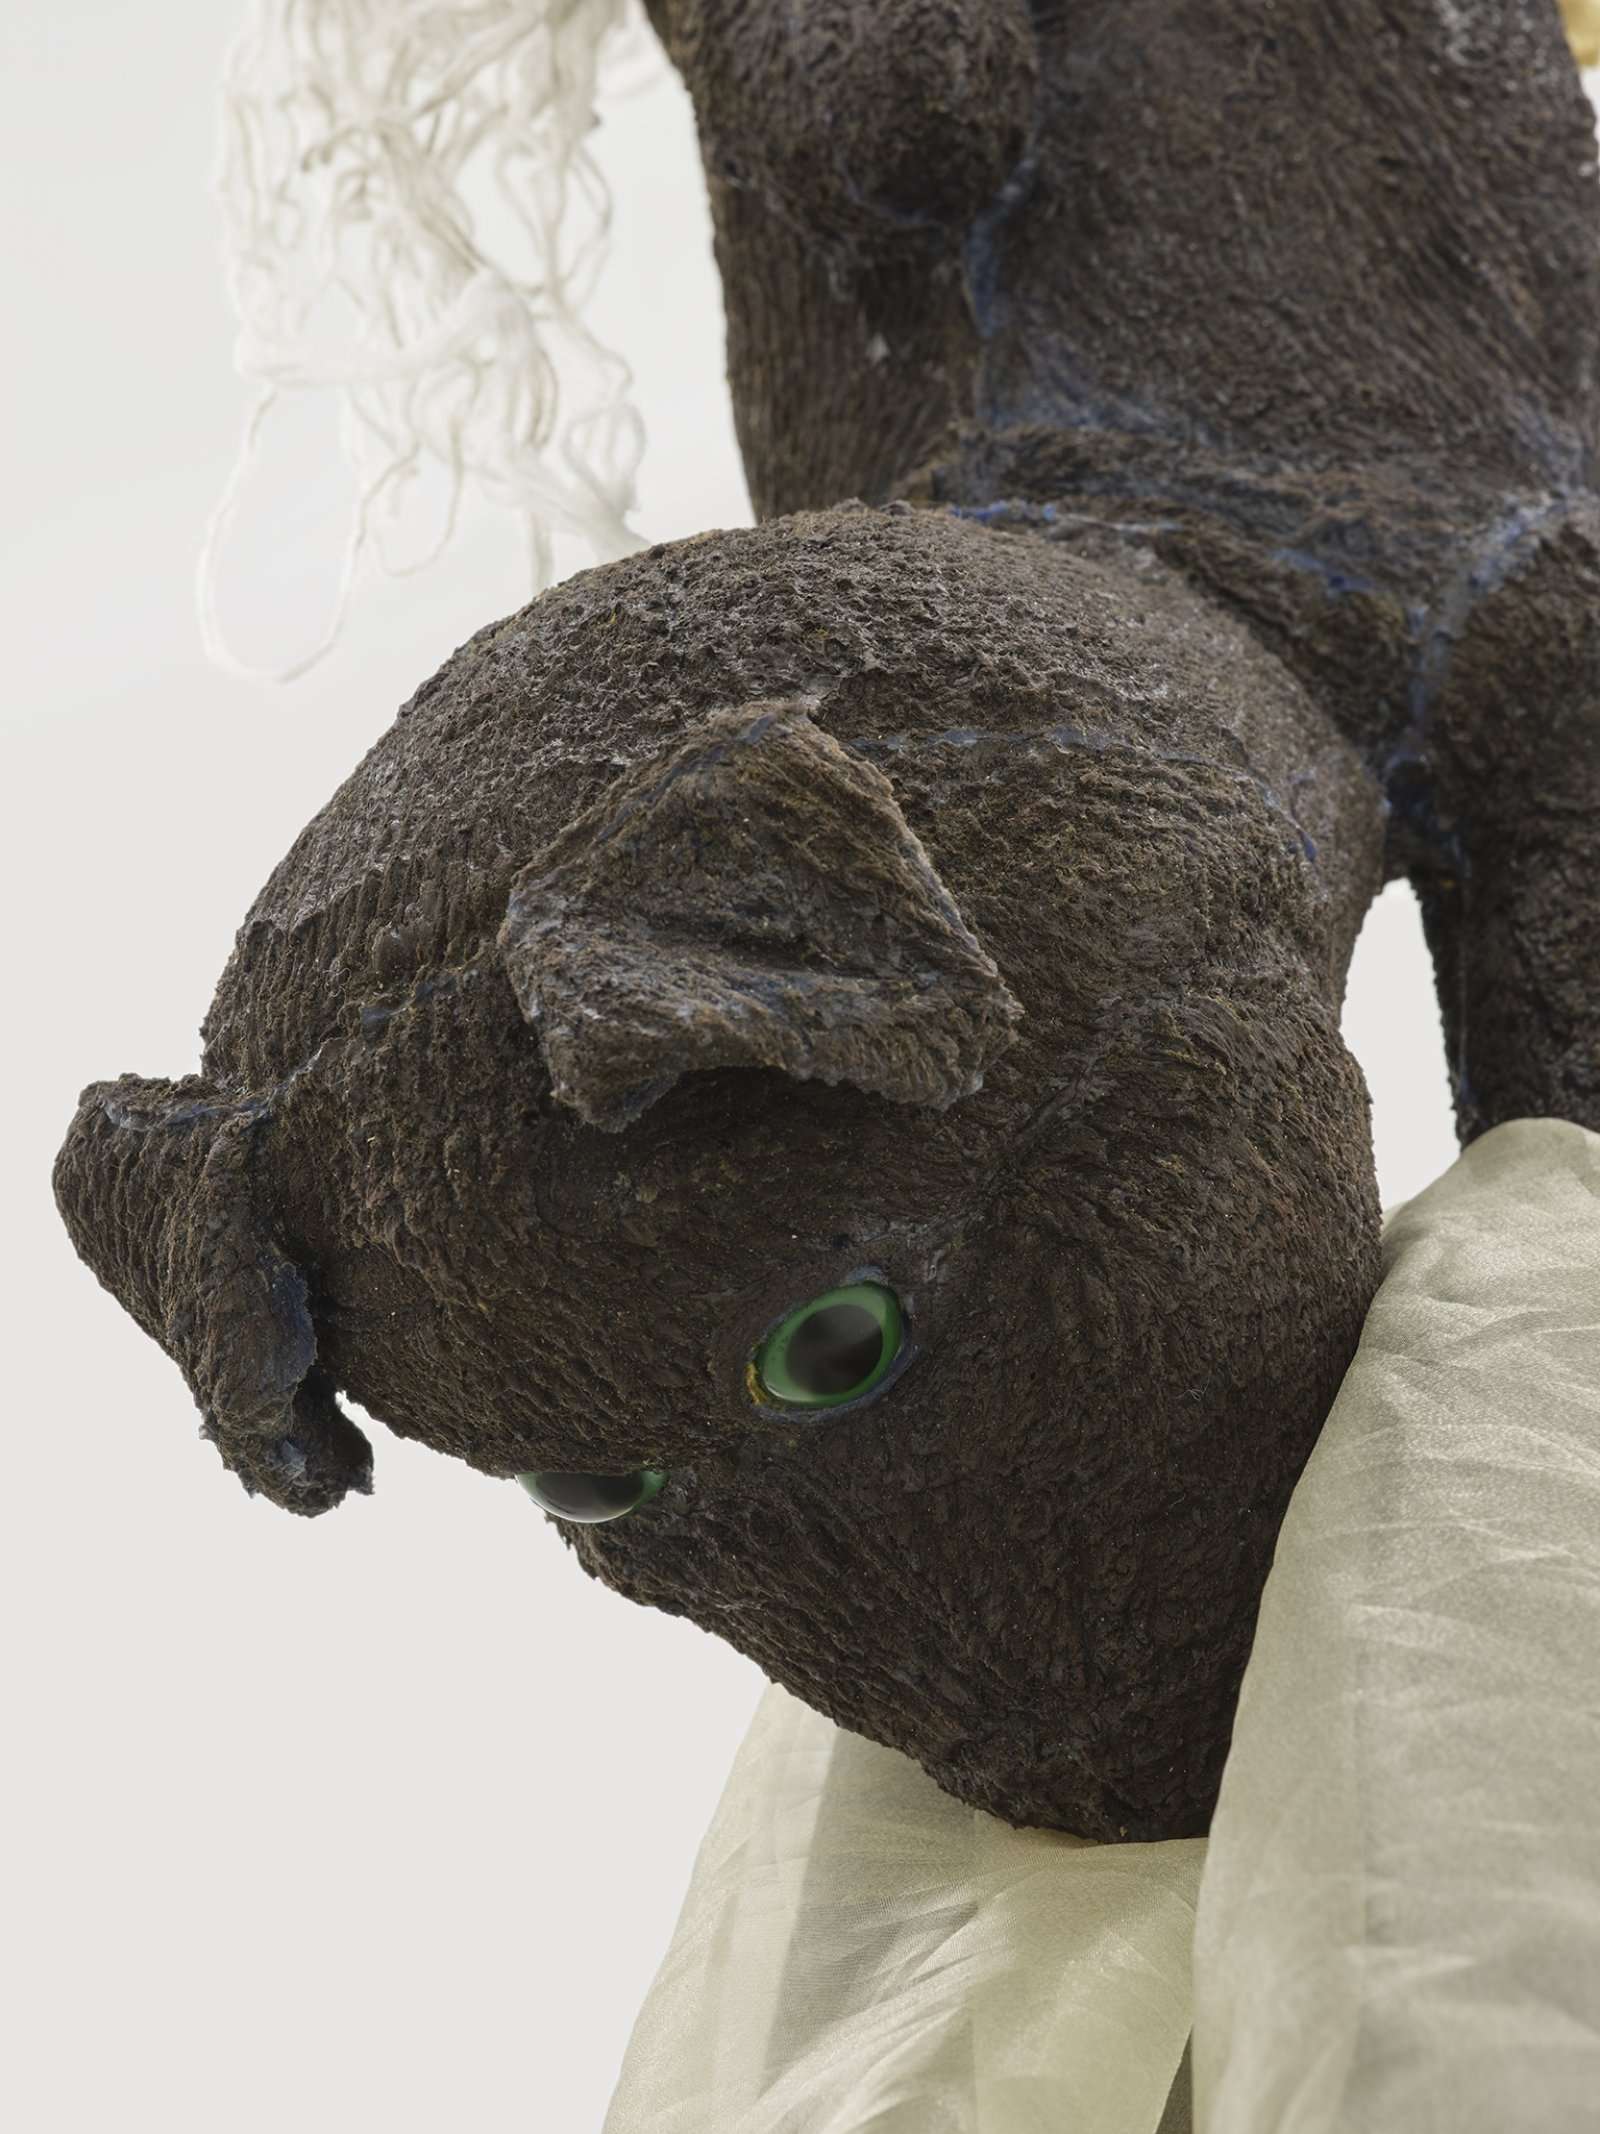 Liz Magor, Delivery (brown), 2018, silicone rubber, textiles, twine, 191 x 42 x 42 in. (485 x 107 x 107 cm) by Liz Magor